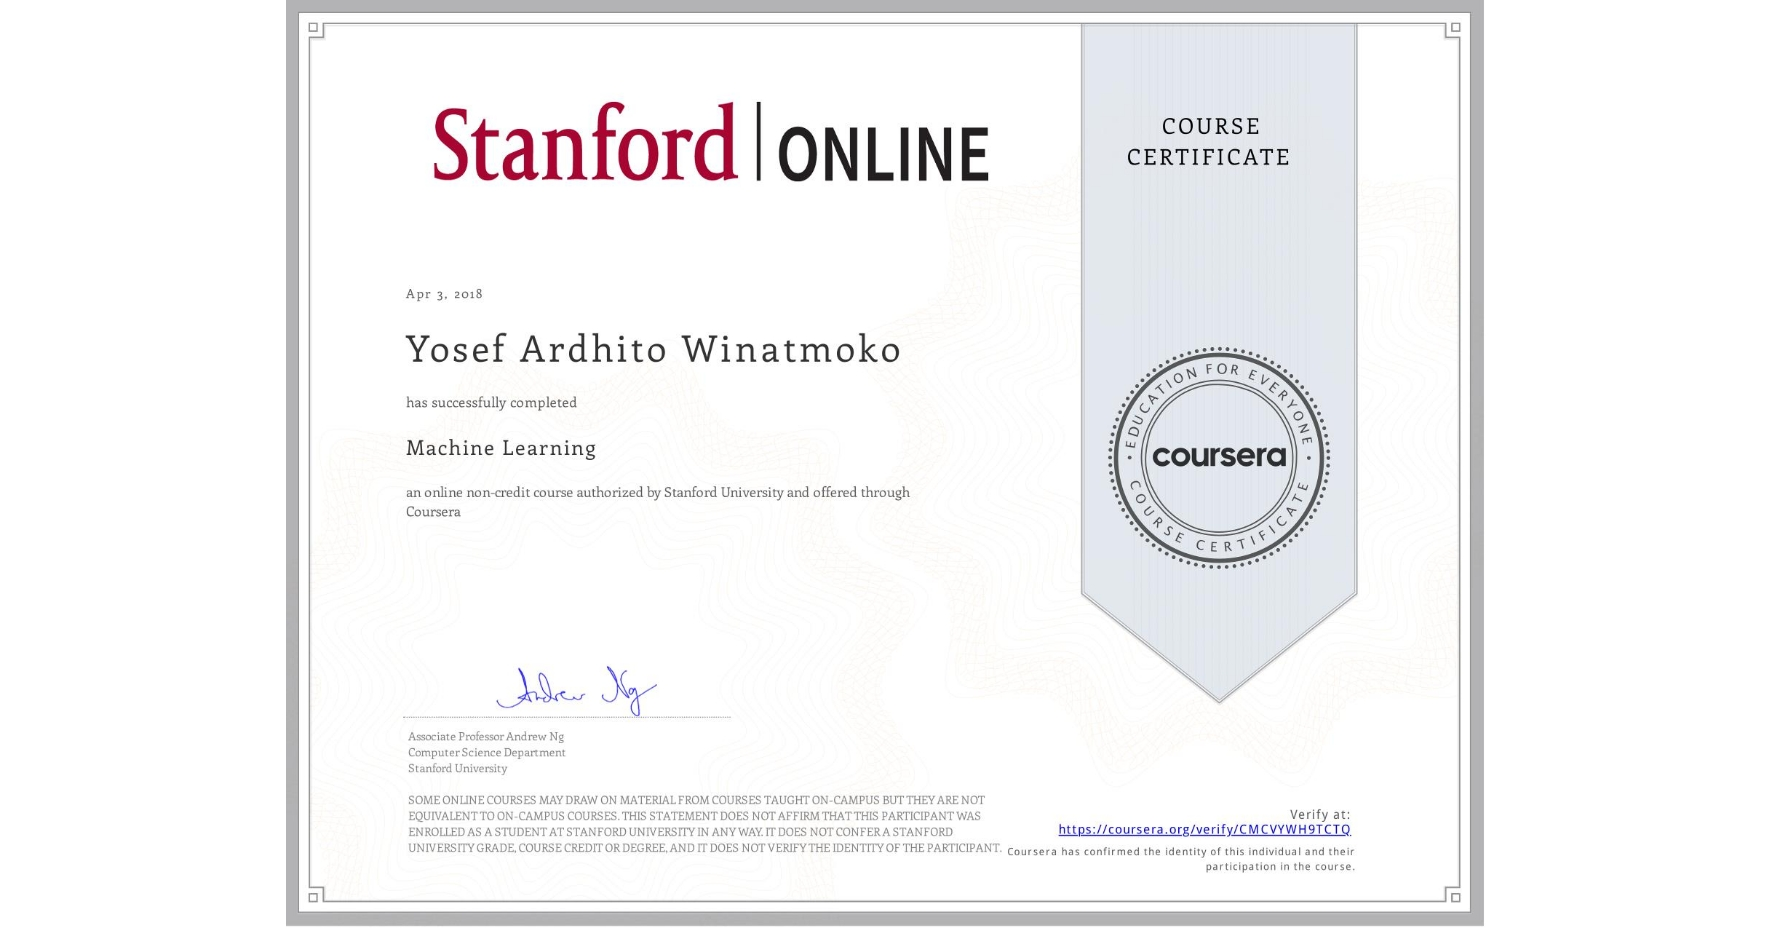 View certificate for Yosef Ardhito  Winatmoko, Machine Learning, an online non-credit course authorized by Stanford University and offered through Coursera